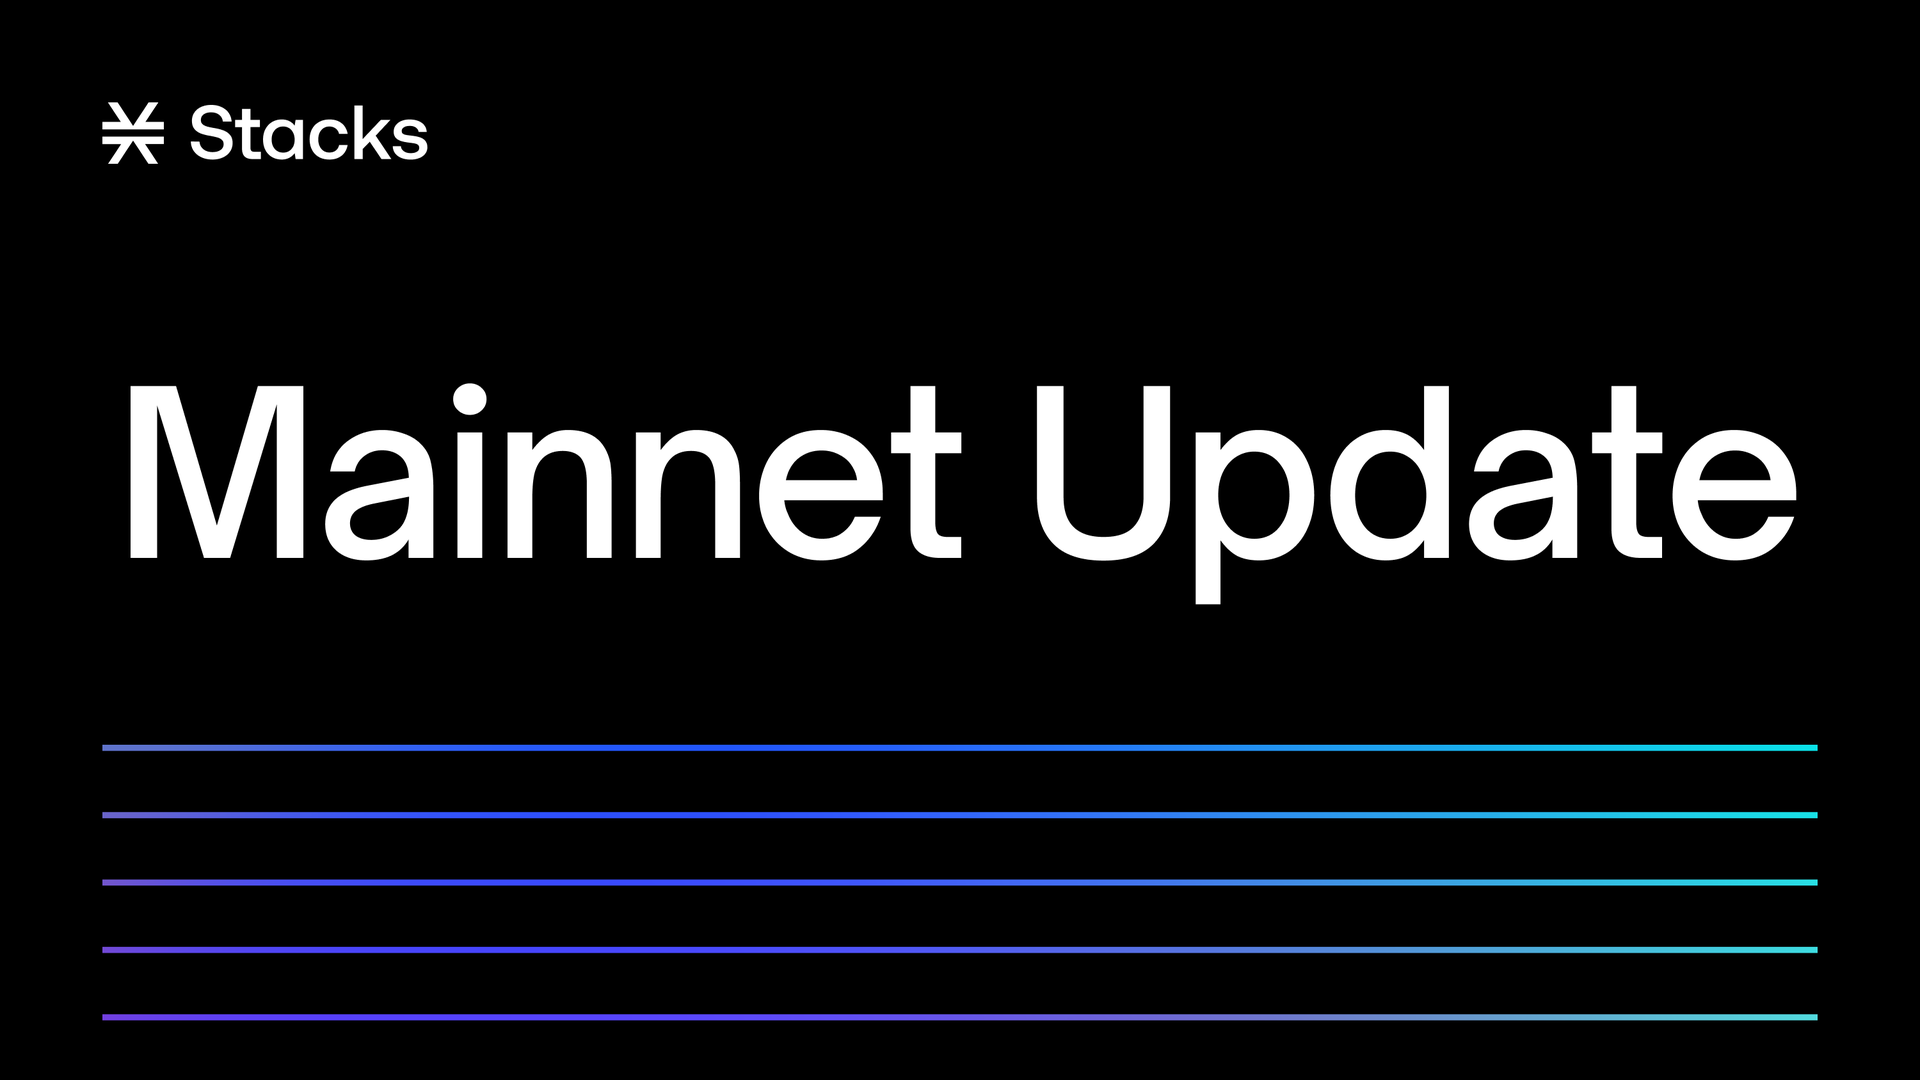 Stacks 2.0 mainnet update